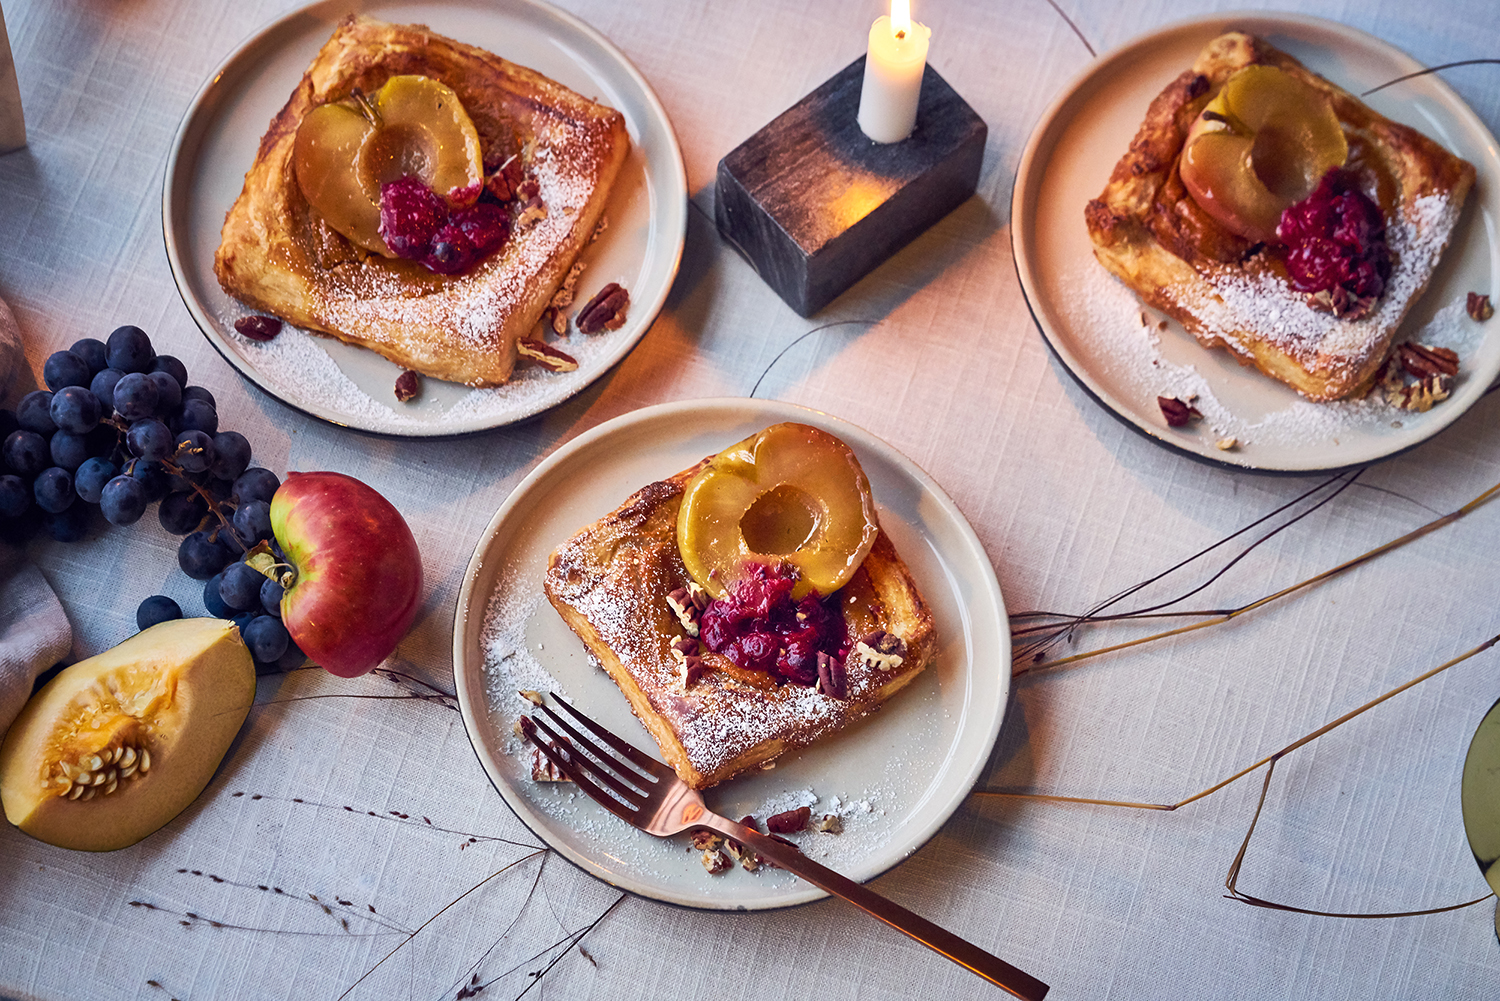 west-elm-apple-pumpkin-tart-04.jpg